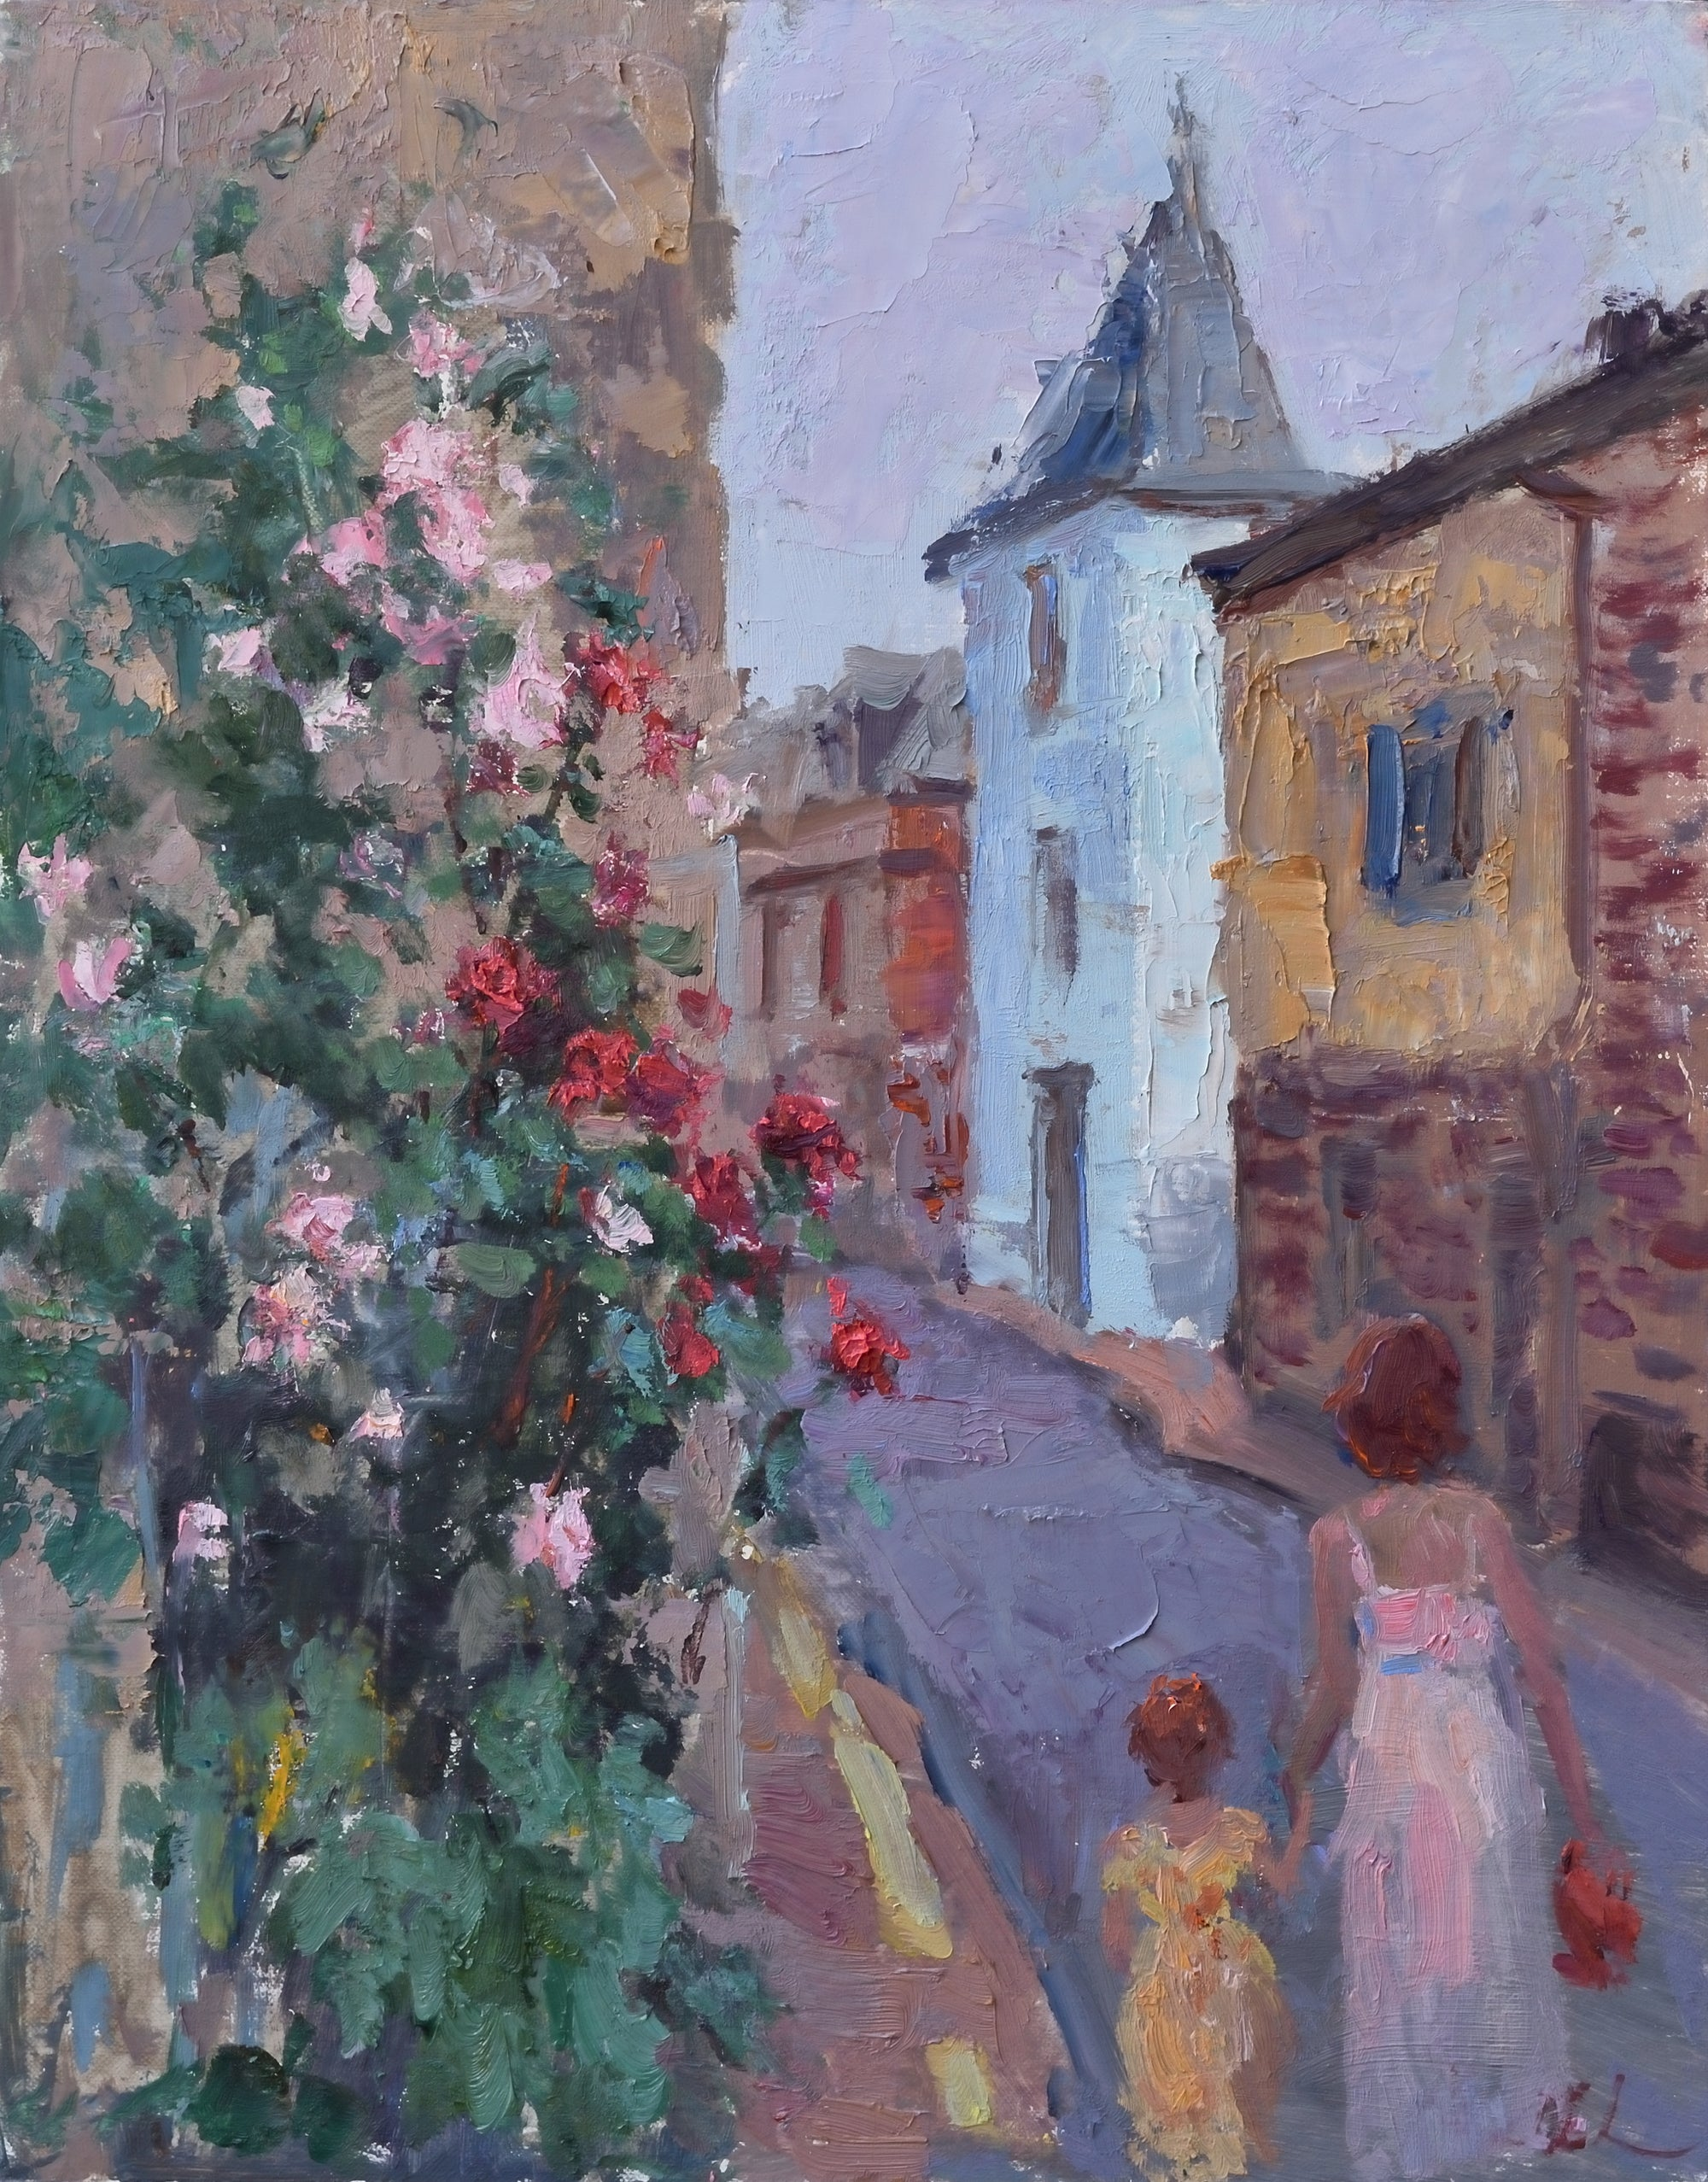 Oksana-Johnson-oil-painting-14x11-inches-Normandy-France-woman-child-walking-old-town-flowers